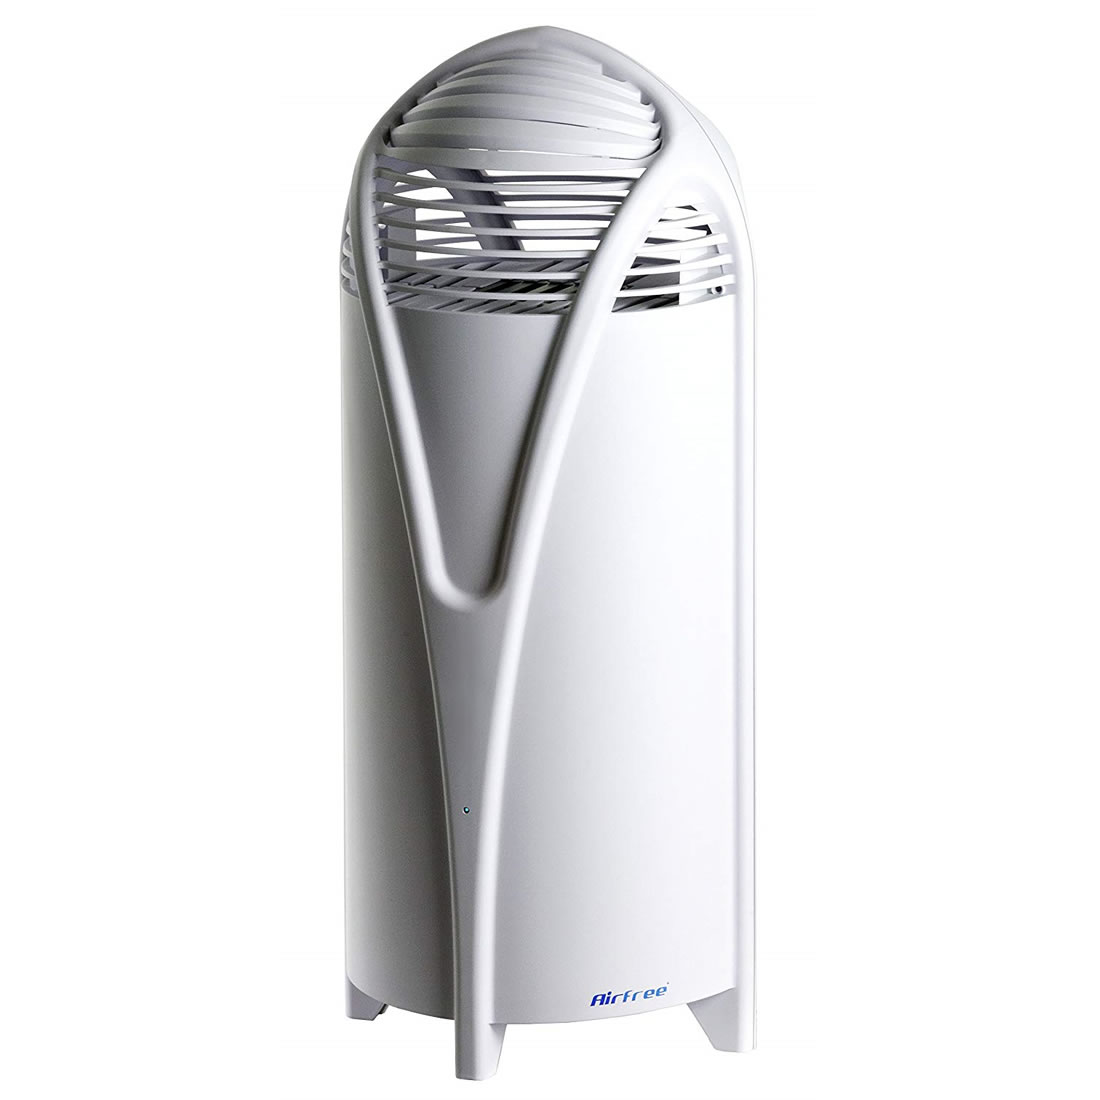 Image of 16 m² Room Capacity Domestic Air Purifier